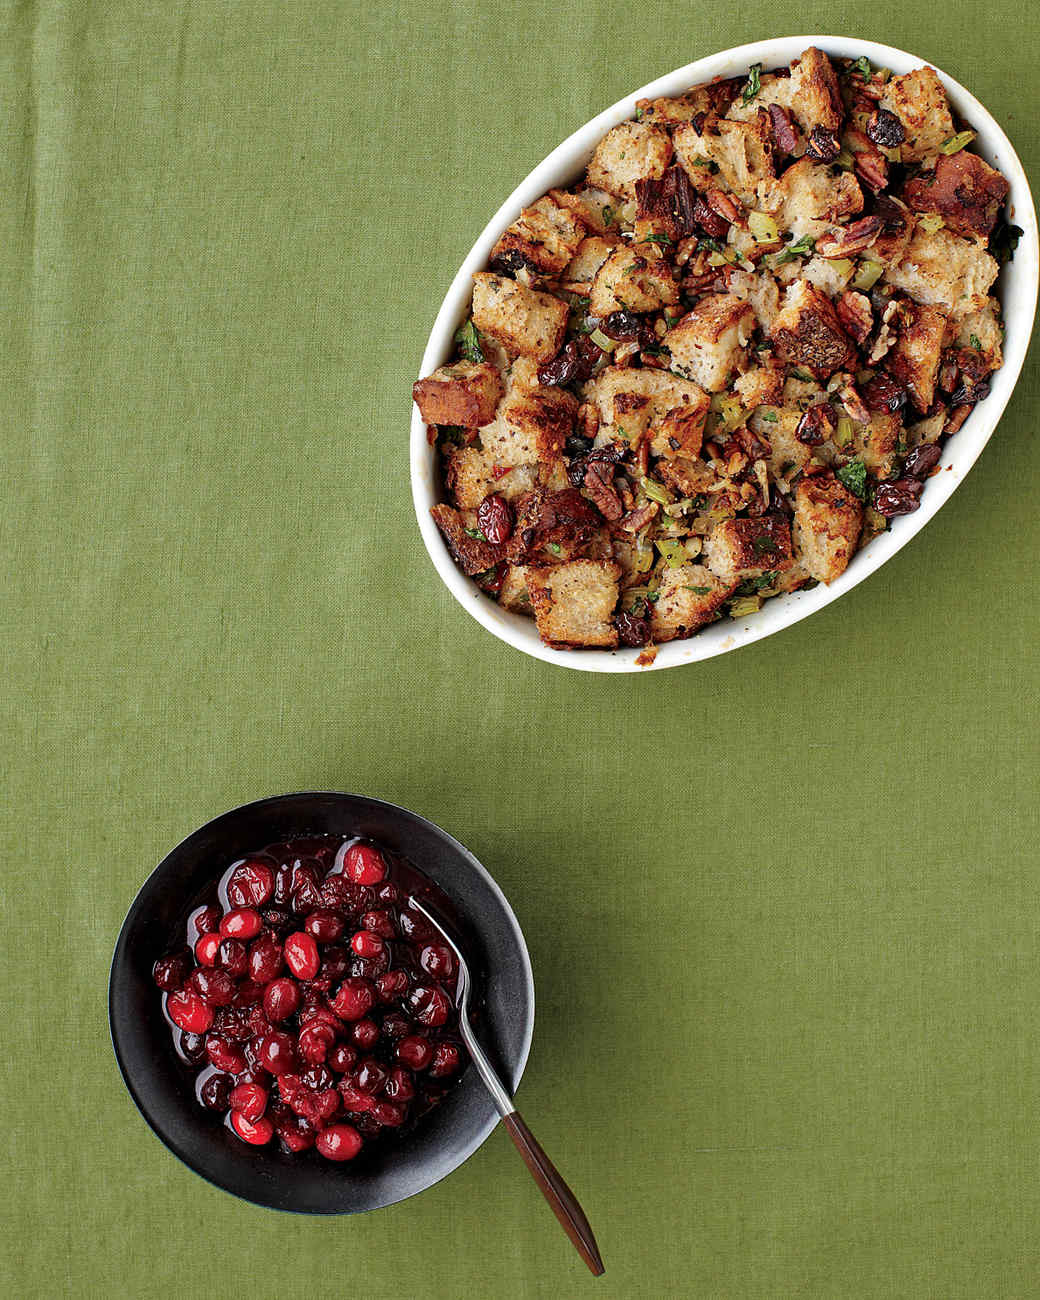 thanksgiving-stuffing-cranberry-sauce-med107616.jpg